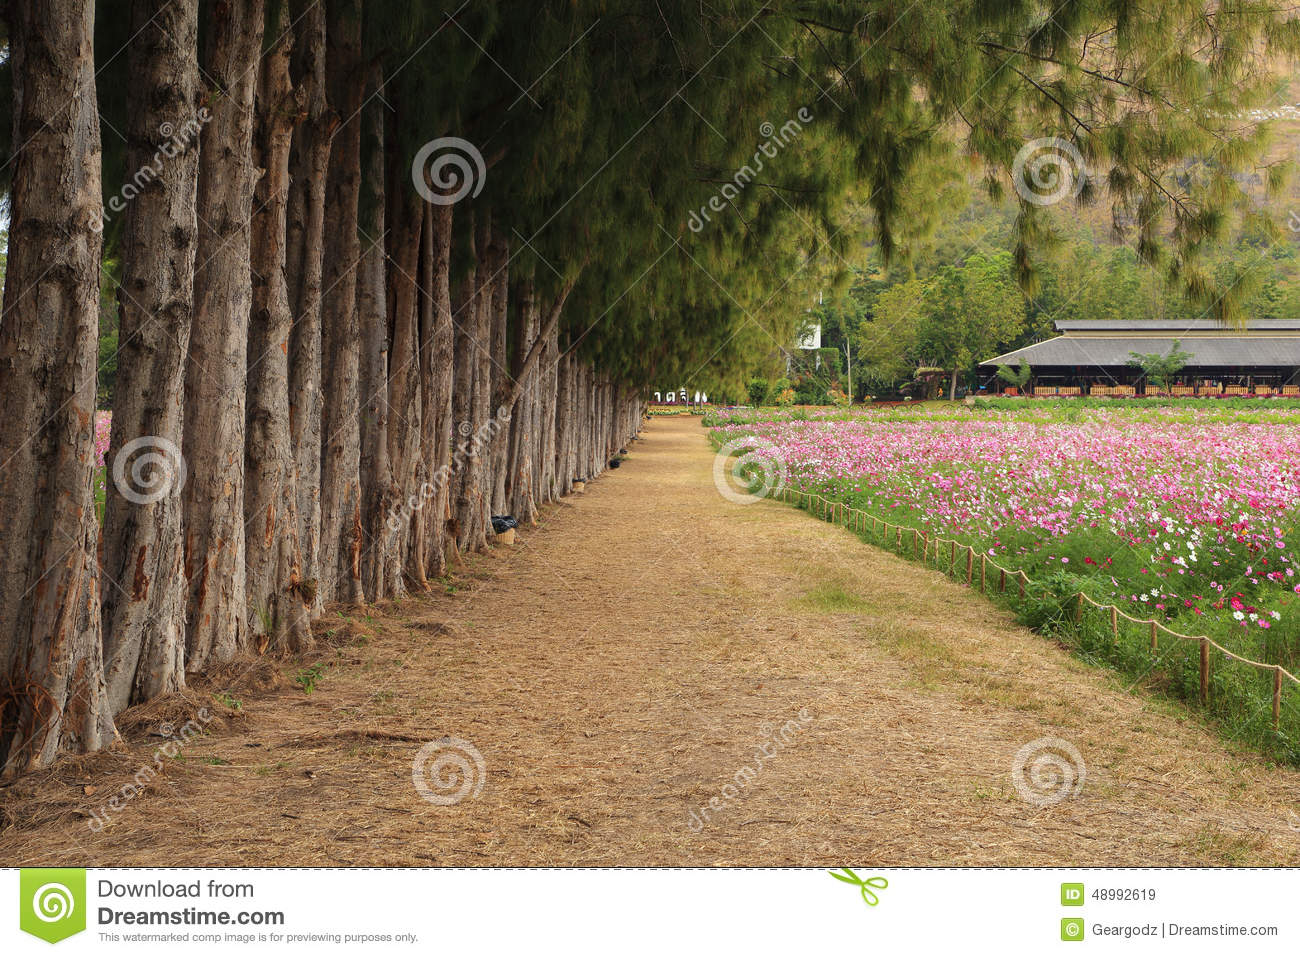 Path between pine trees and cosmos flower field stock image image download path between pine trees and cosmos flower field stock image image of cosmos mightylinksfo